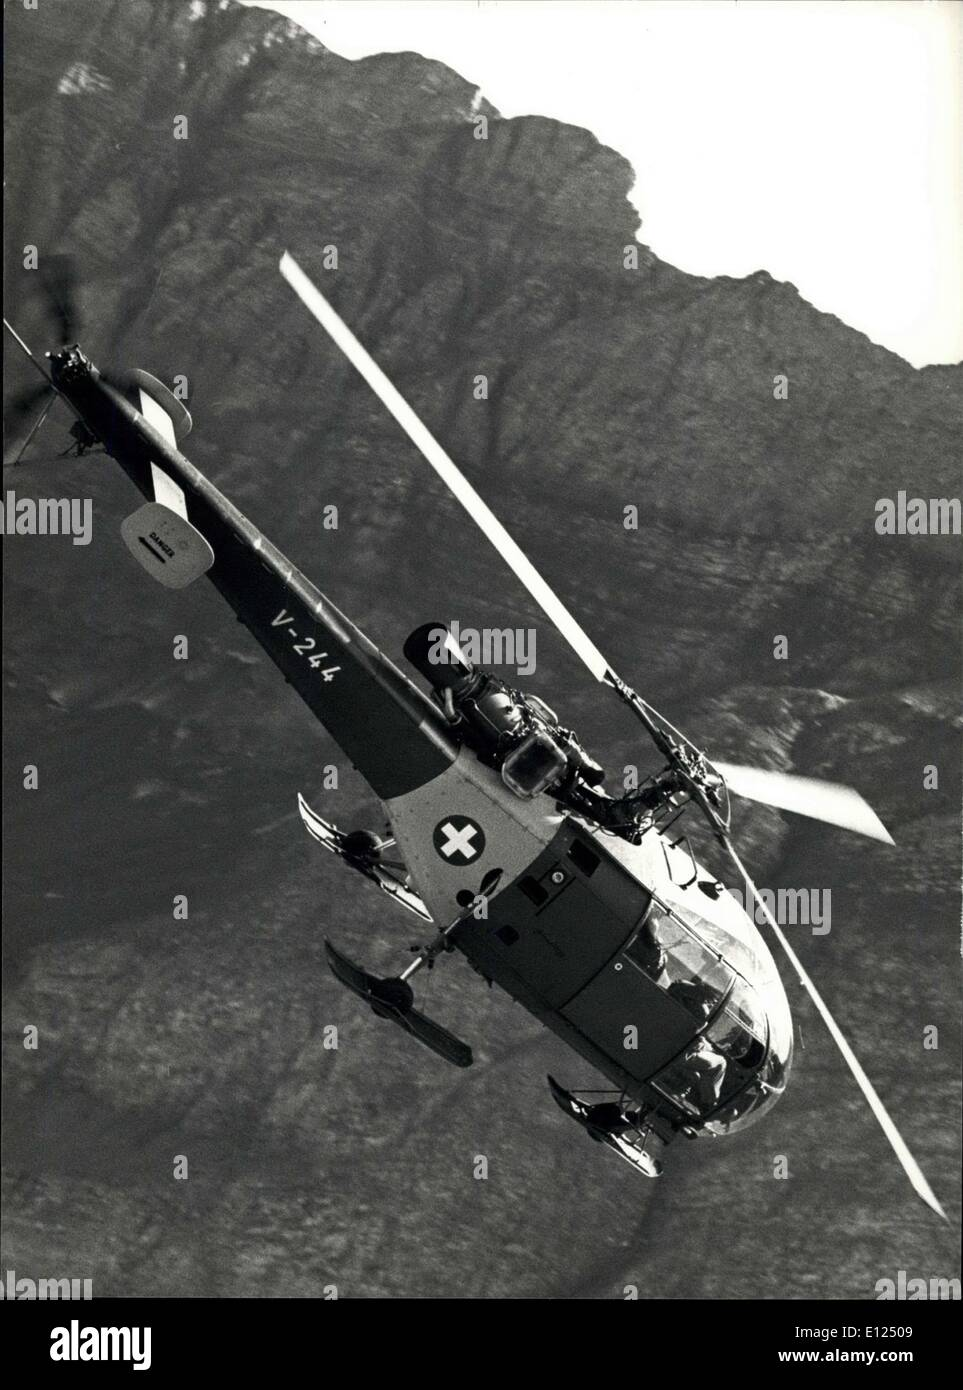 Oct. 04, 1986 - Swiss Airforce-Training in the Alps: Several times a year Swiss Airfore-Pilots have the possibility in training - Stock Image